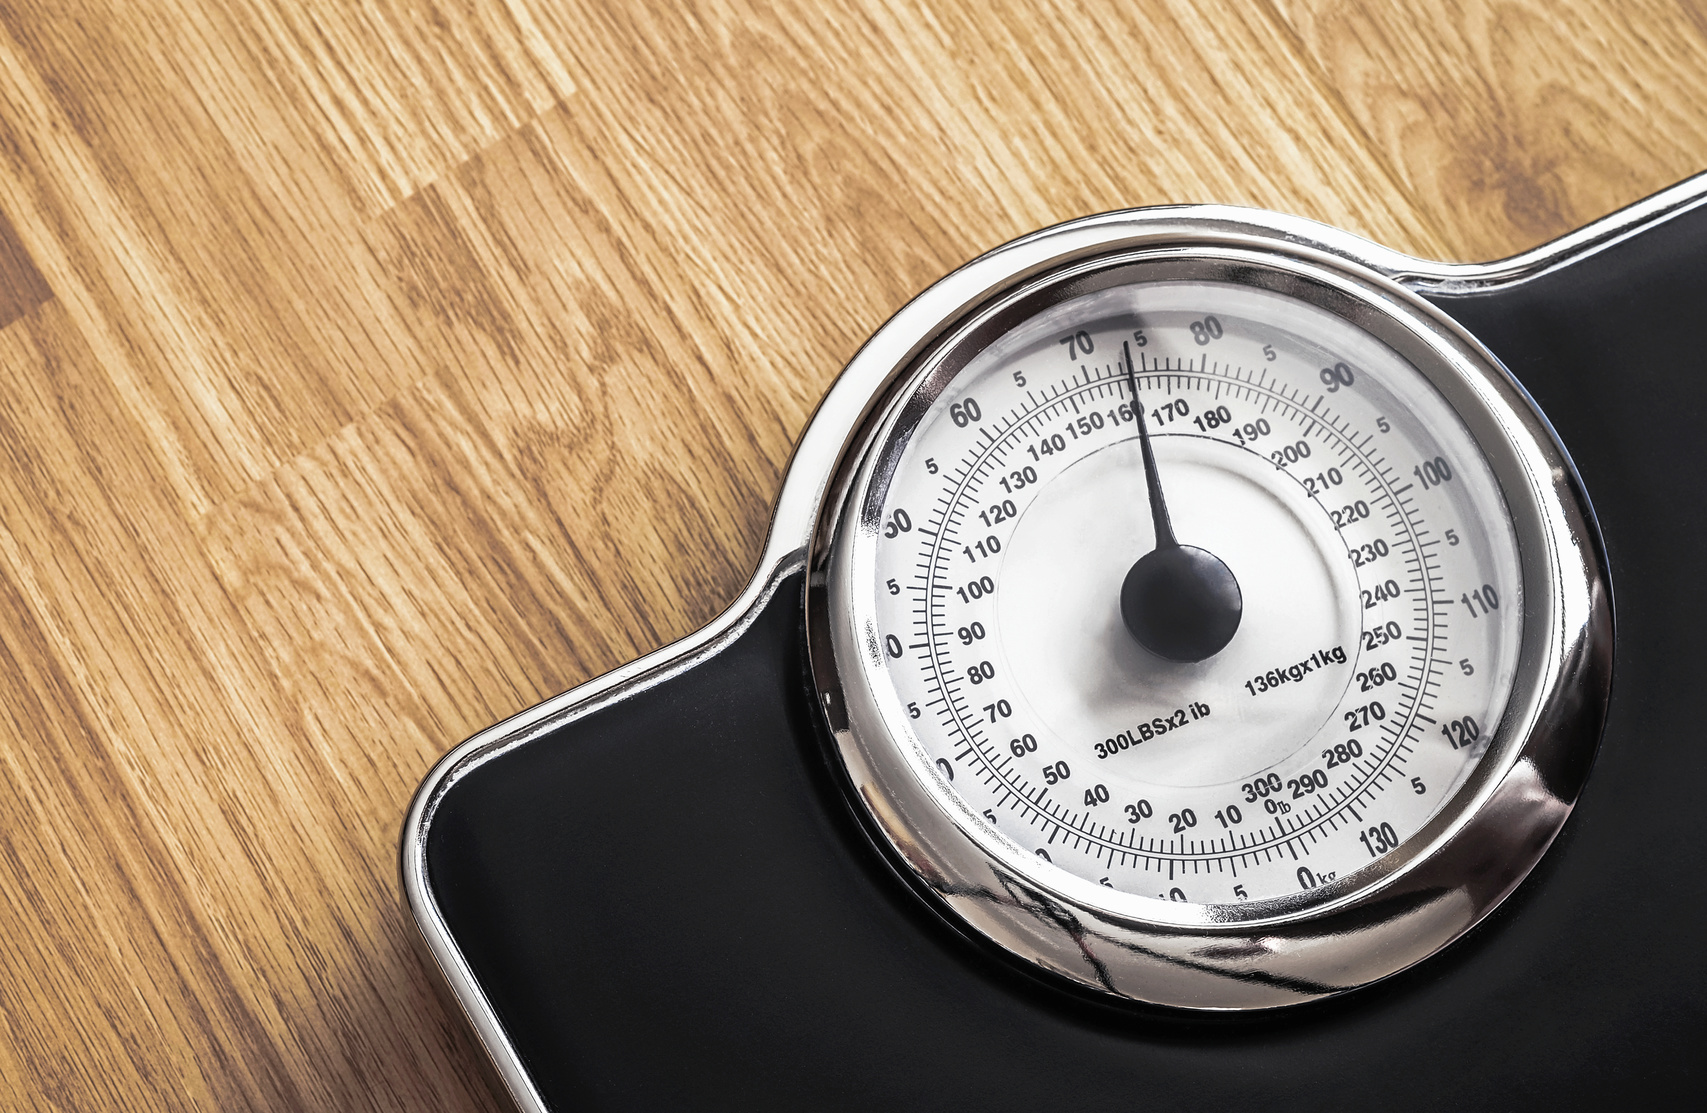 Why Weight Loss Isn't Linear: Our Fluctuating Weight